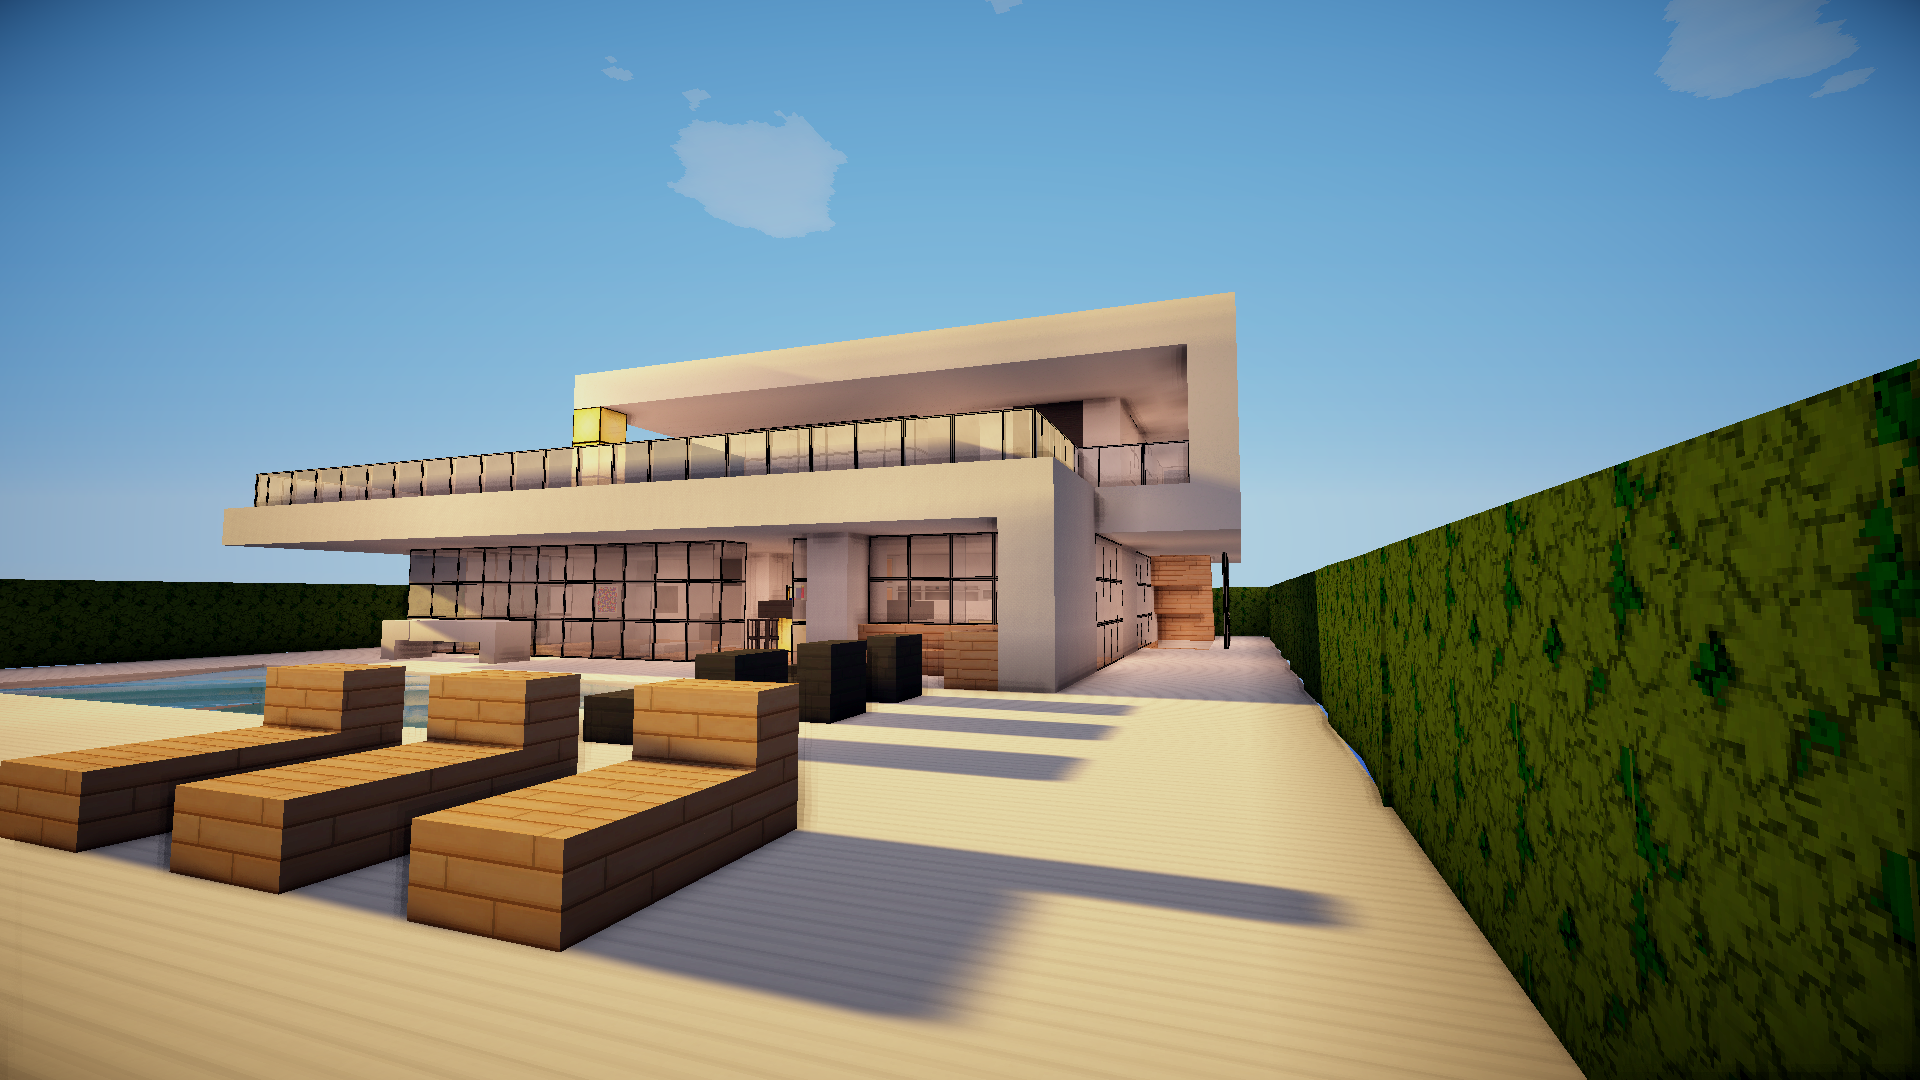 Modernes helles haus minecraft forum for Minecraft haus modern